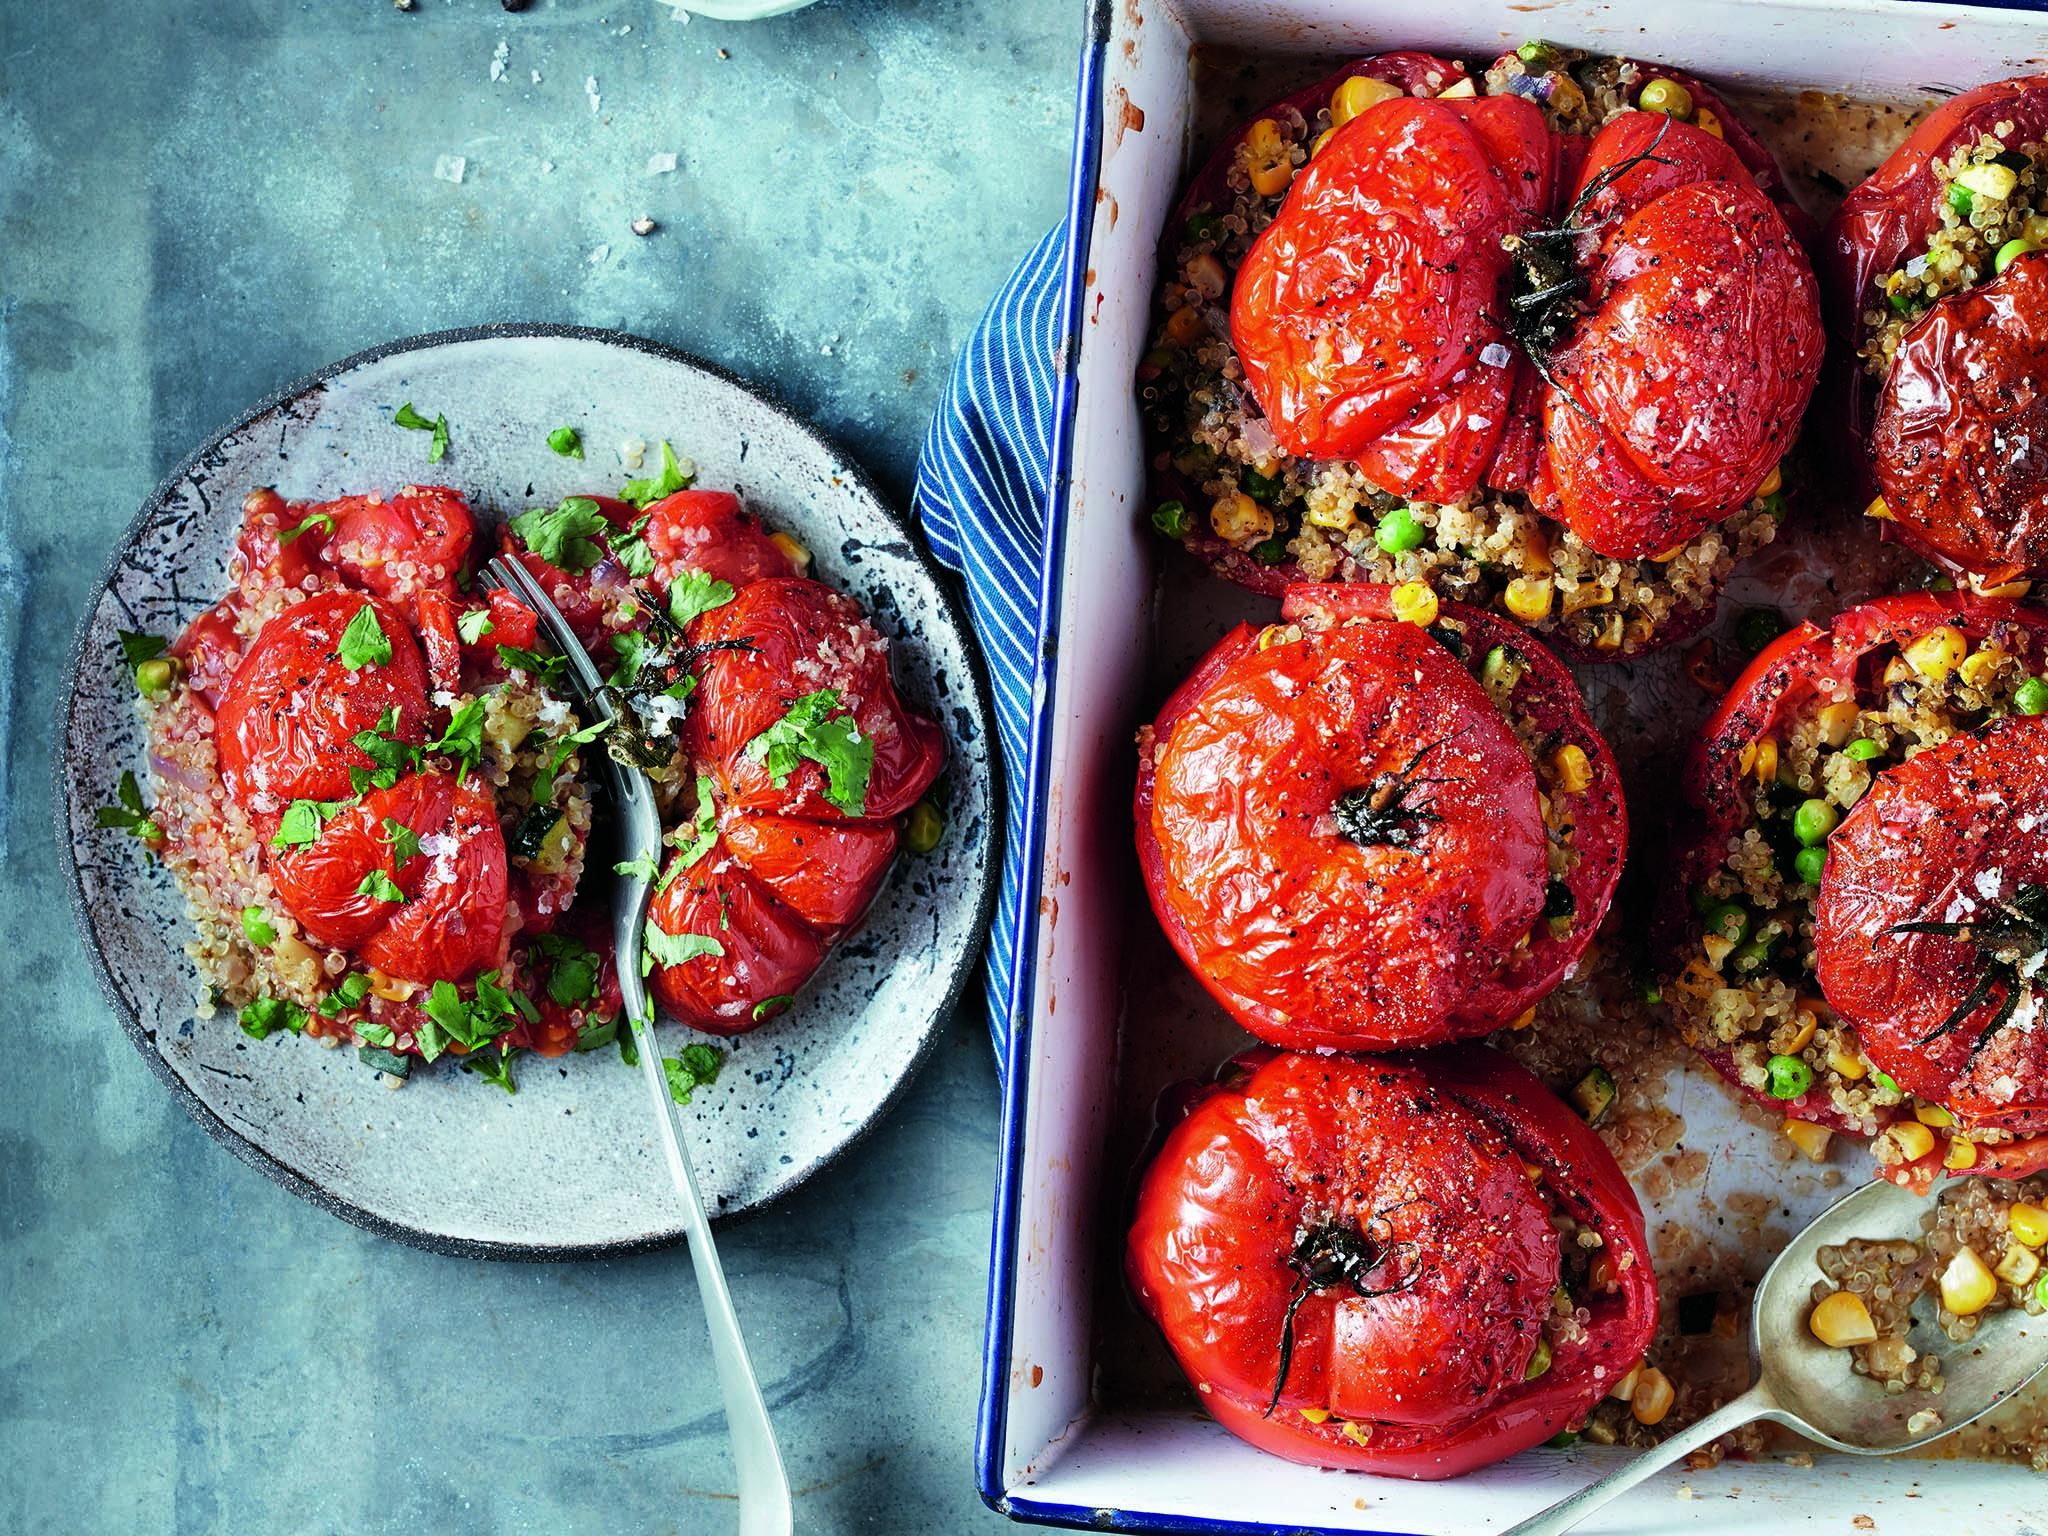 How to make vegan quinoa-stuffed tomatoes 1